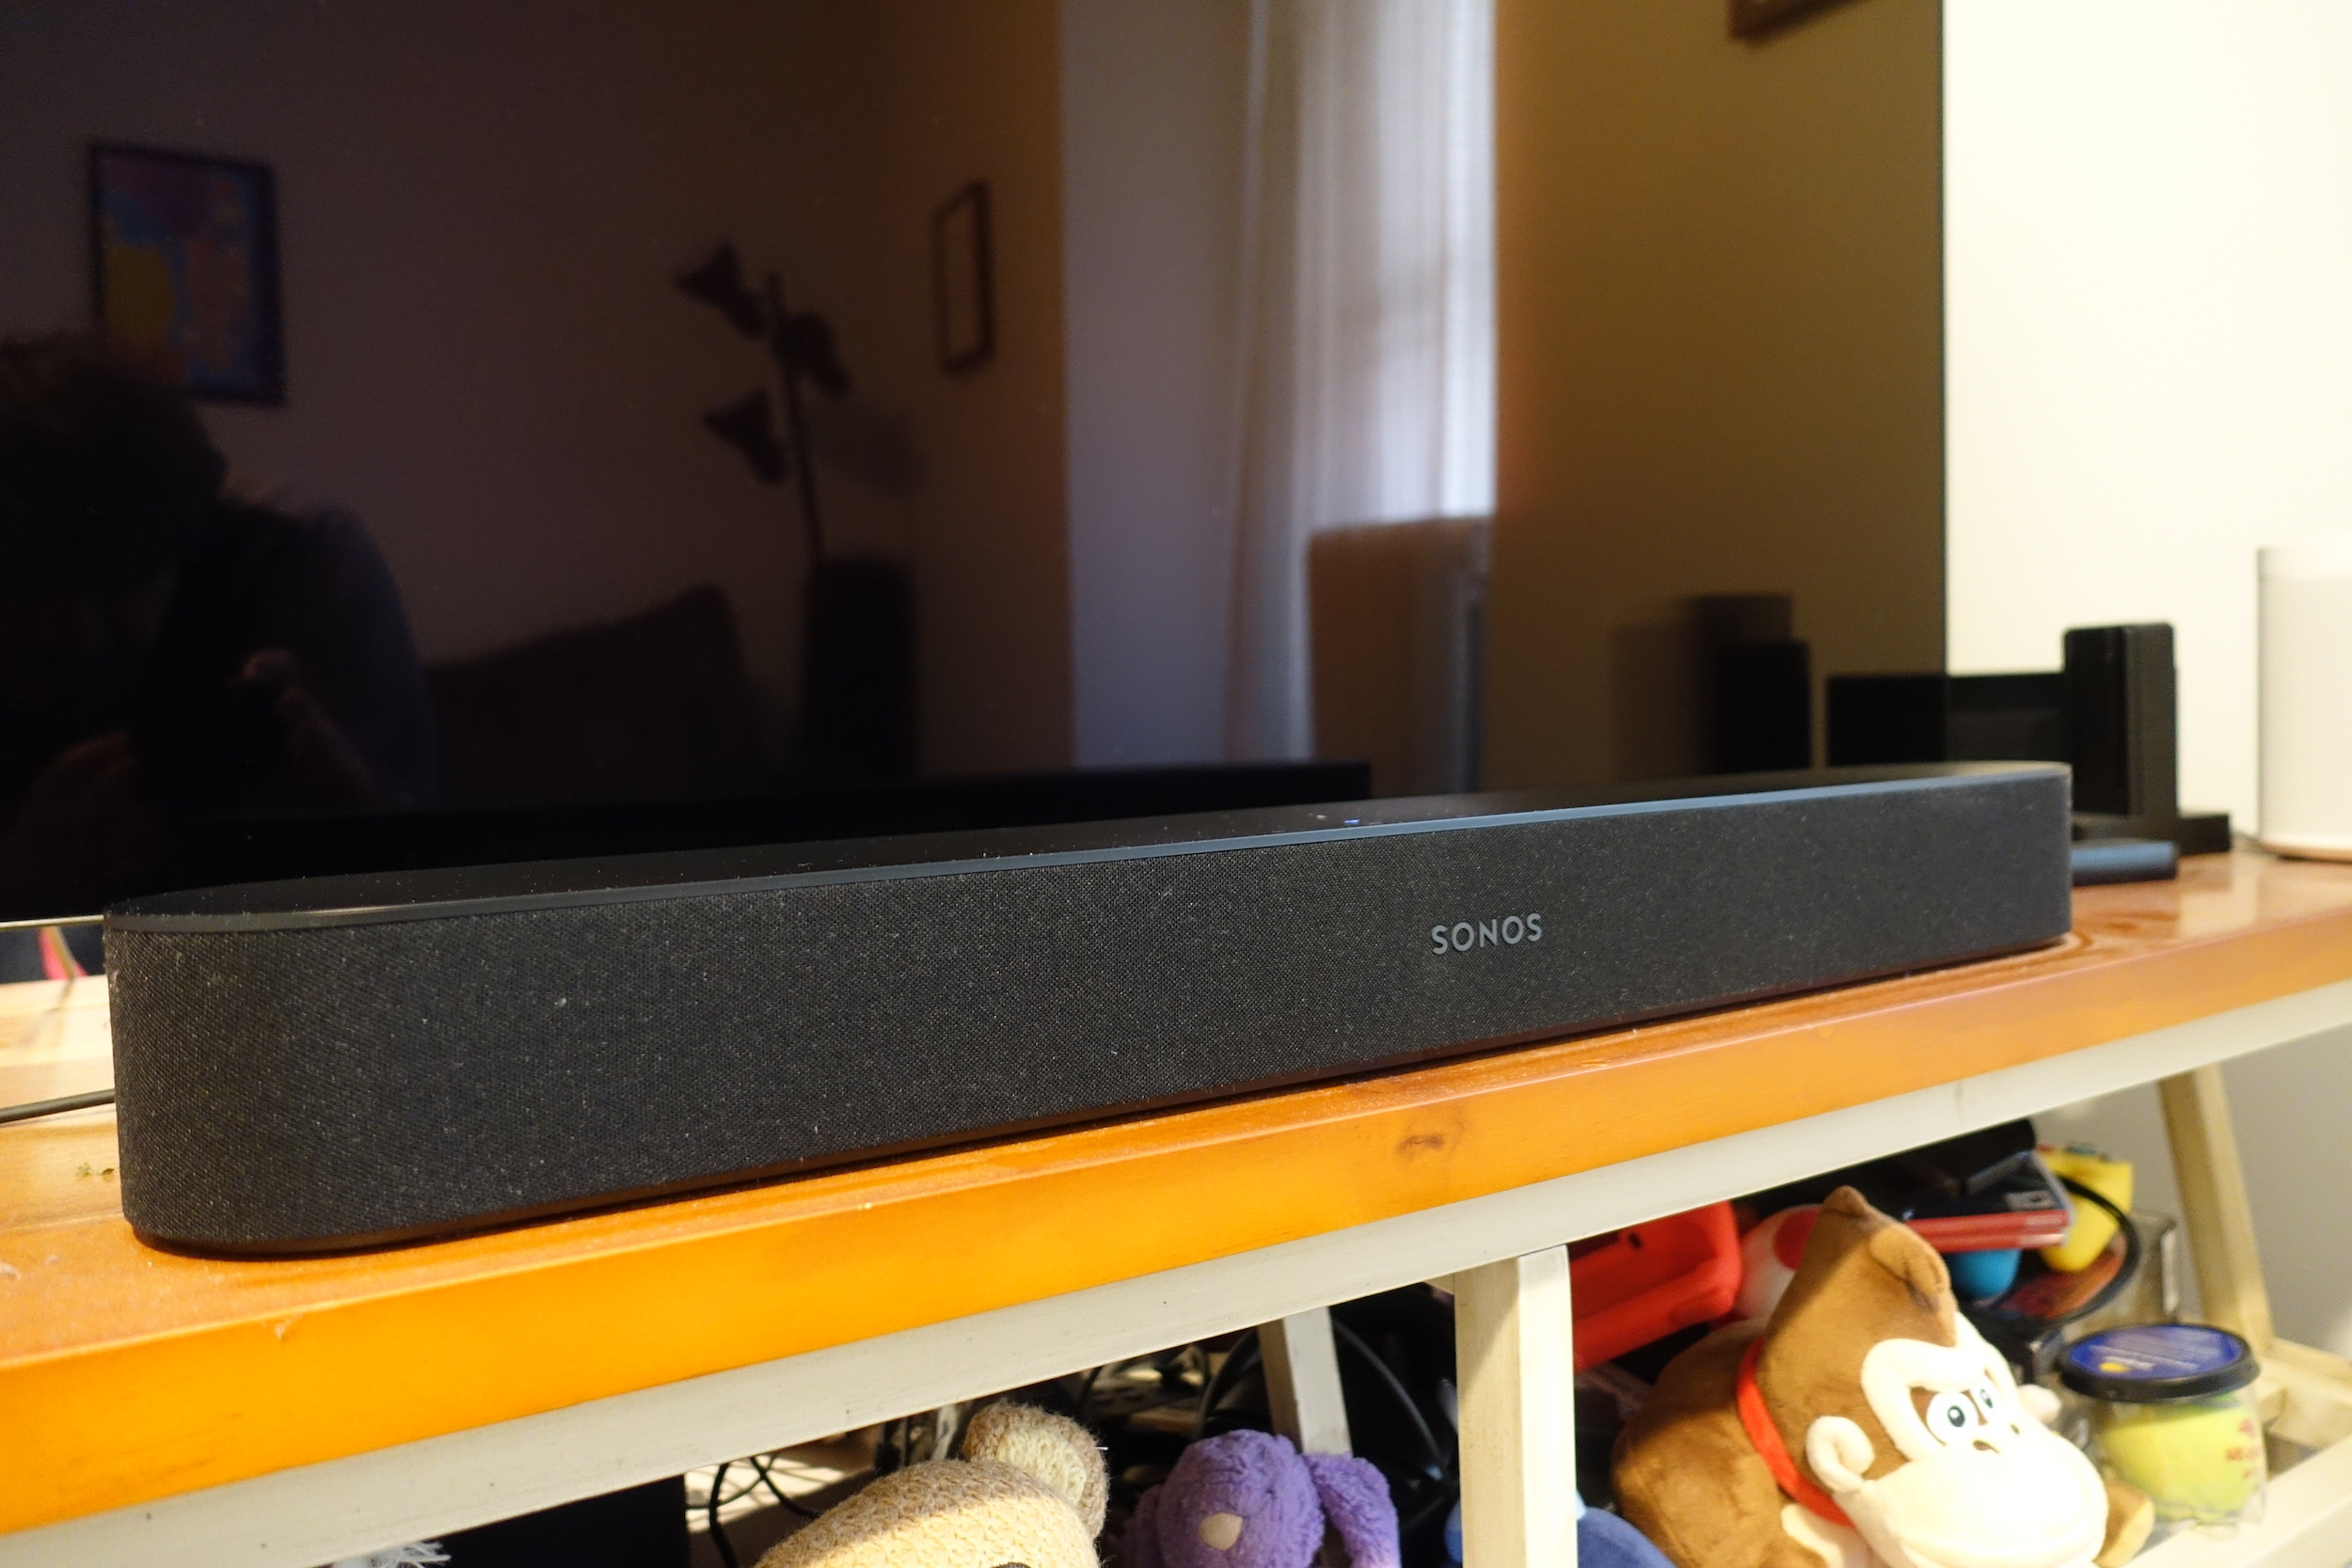 The Sonos Beam is as easy to use as any Sonos speaker, sounds great for its size, and supports voice assistants like Alexa and the Google Assistant.